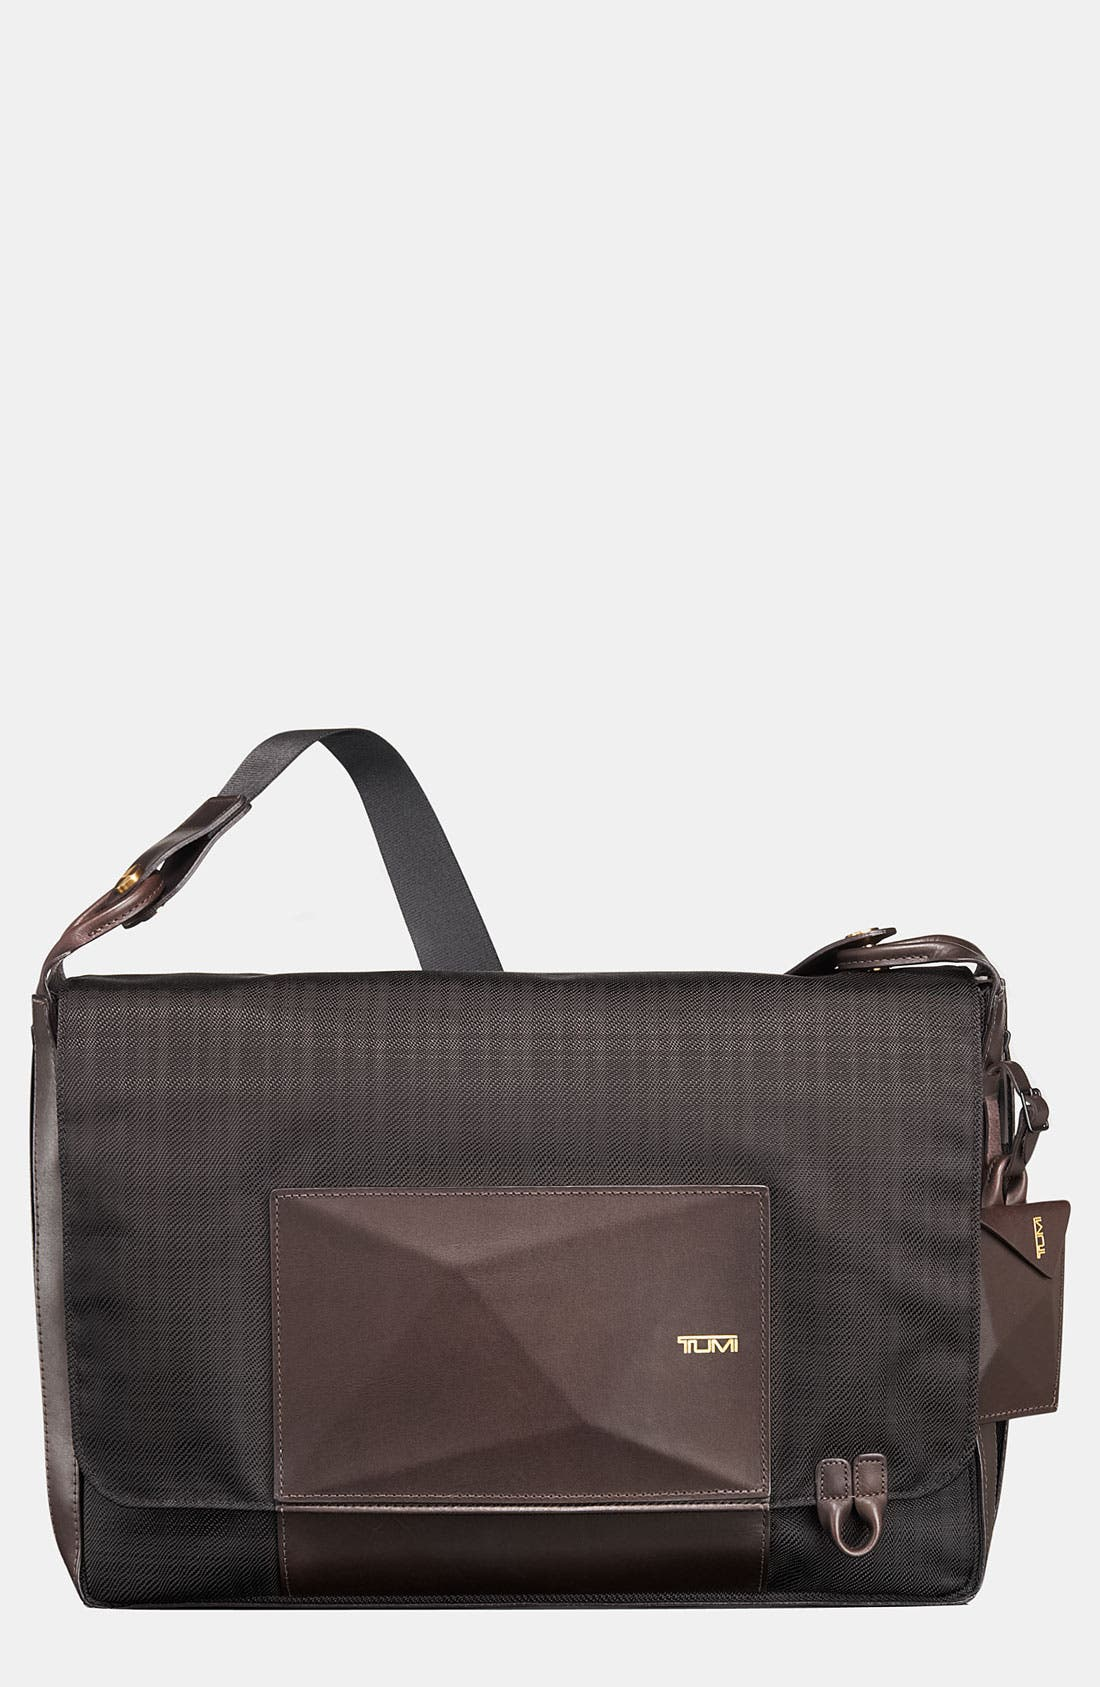 Alternate Image 1 Selected - Tumi 'Dror' Messenger Bag